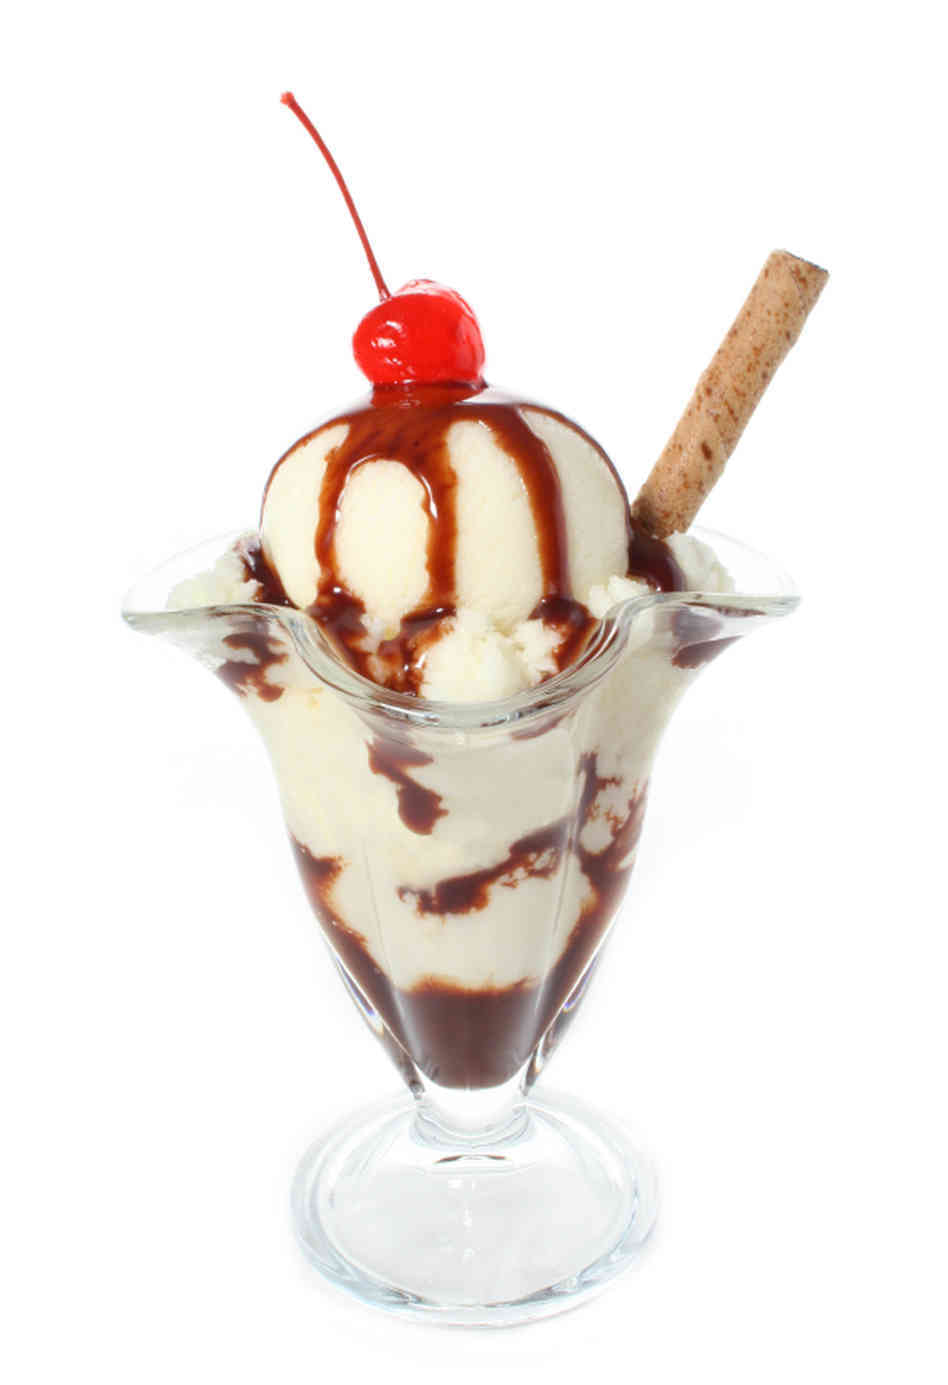 Sundaes are a treat. Treat them so.